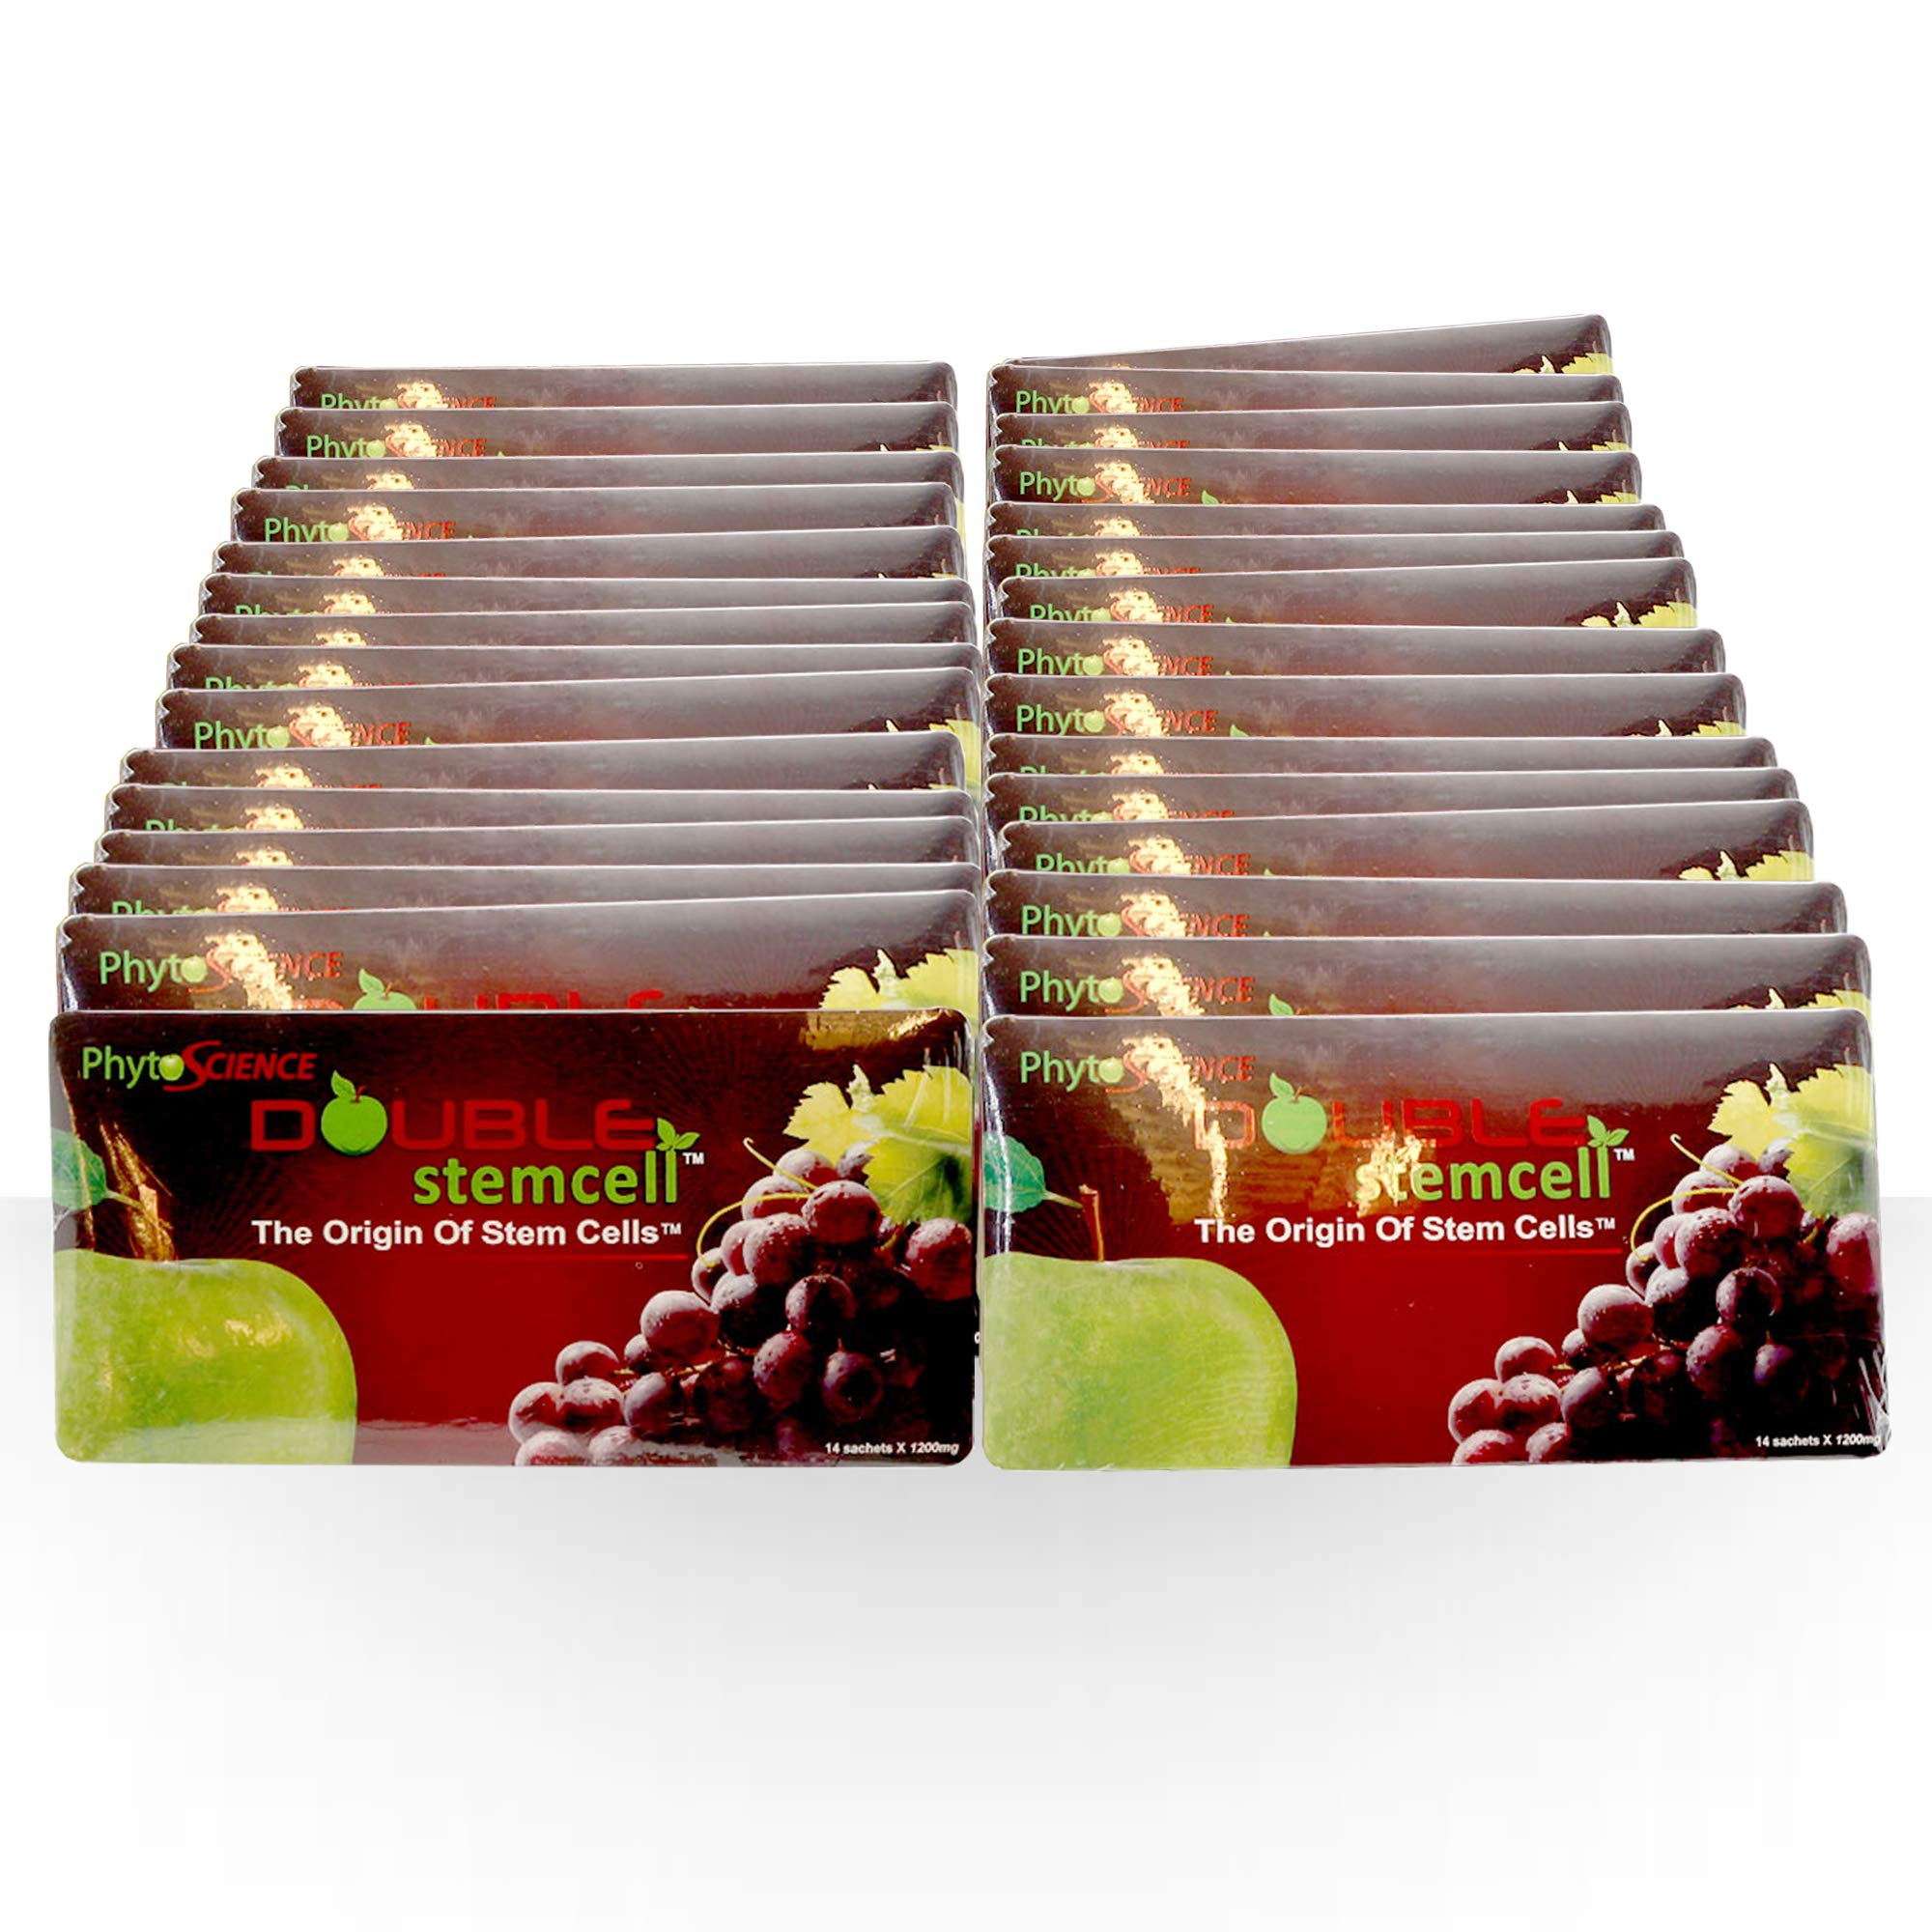 30 Pack Double StemCell Phytoscience